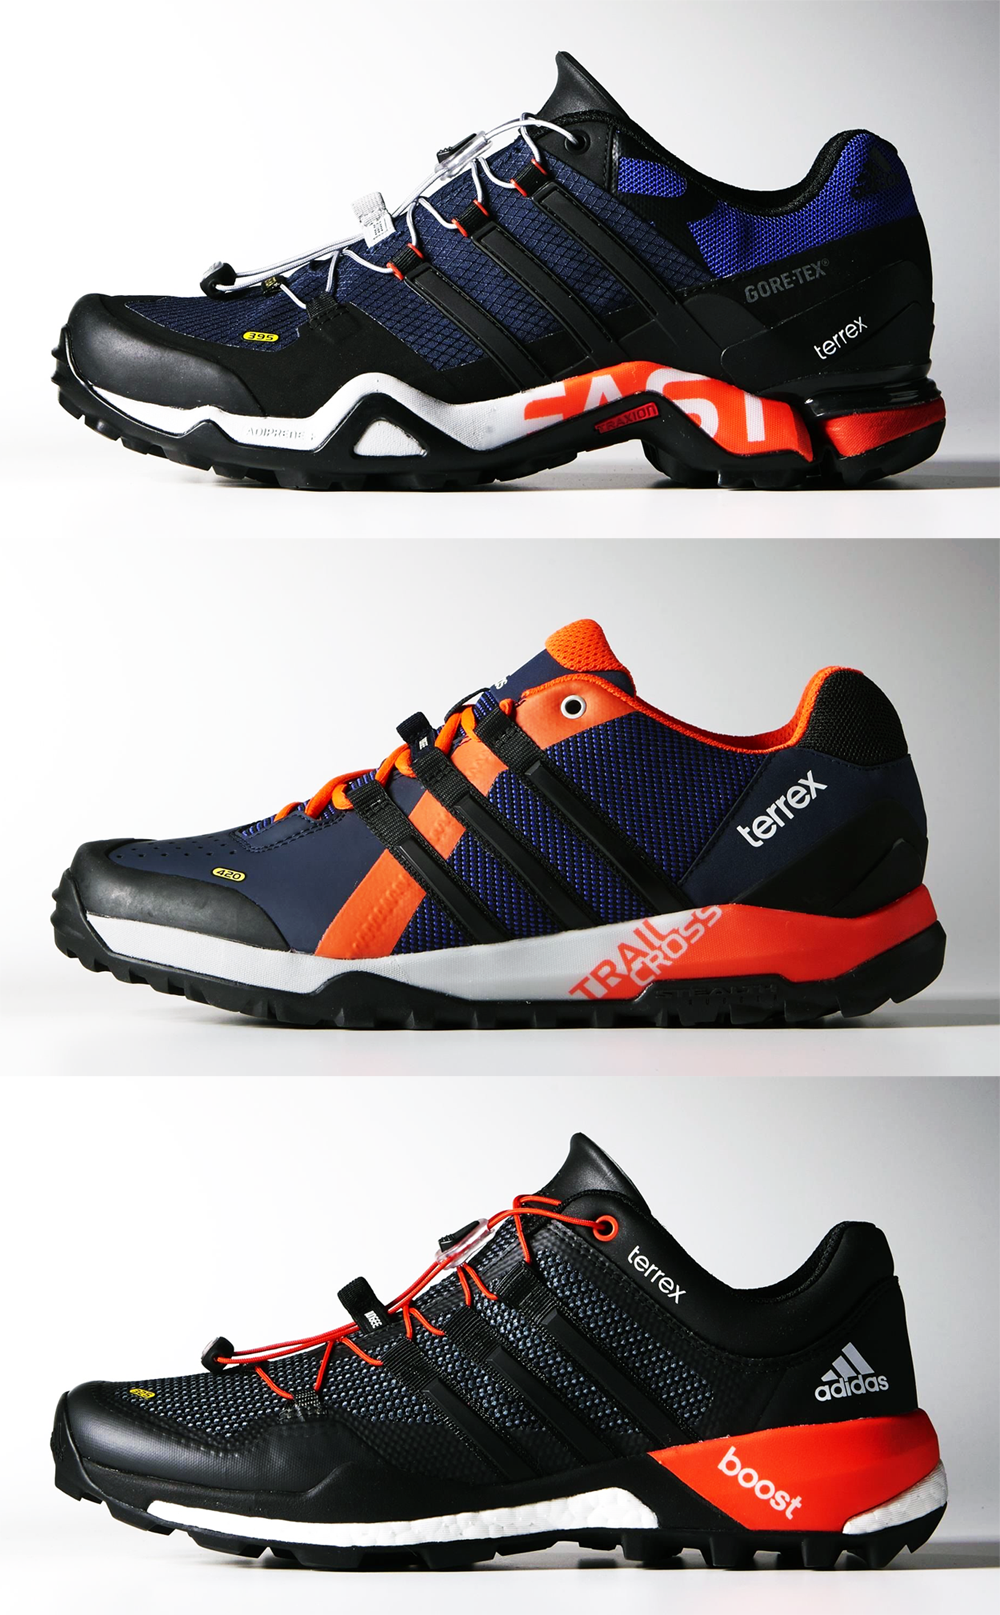 8324e10bdfe adidas Terrex trail shoes